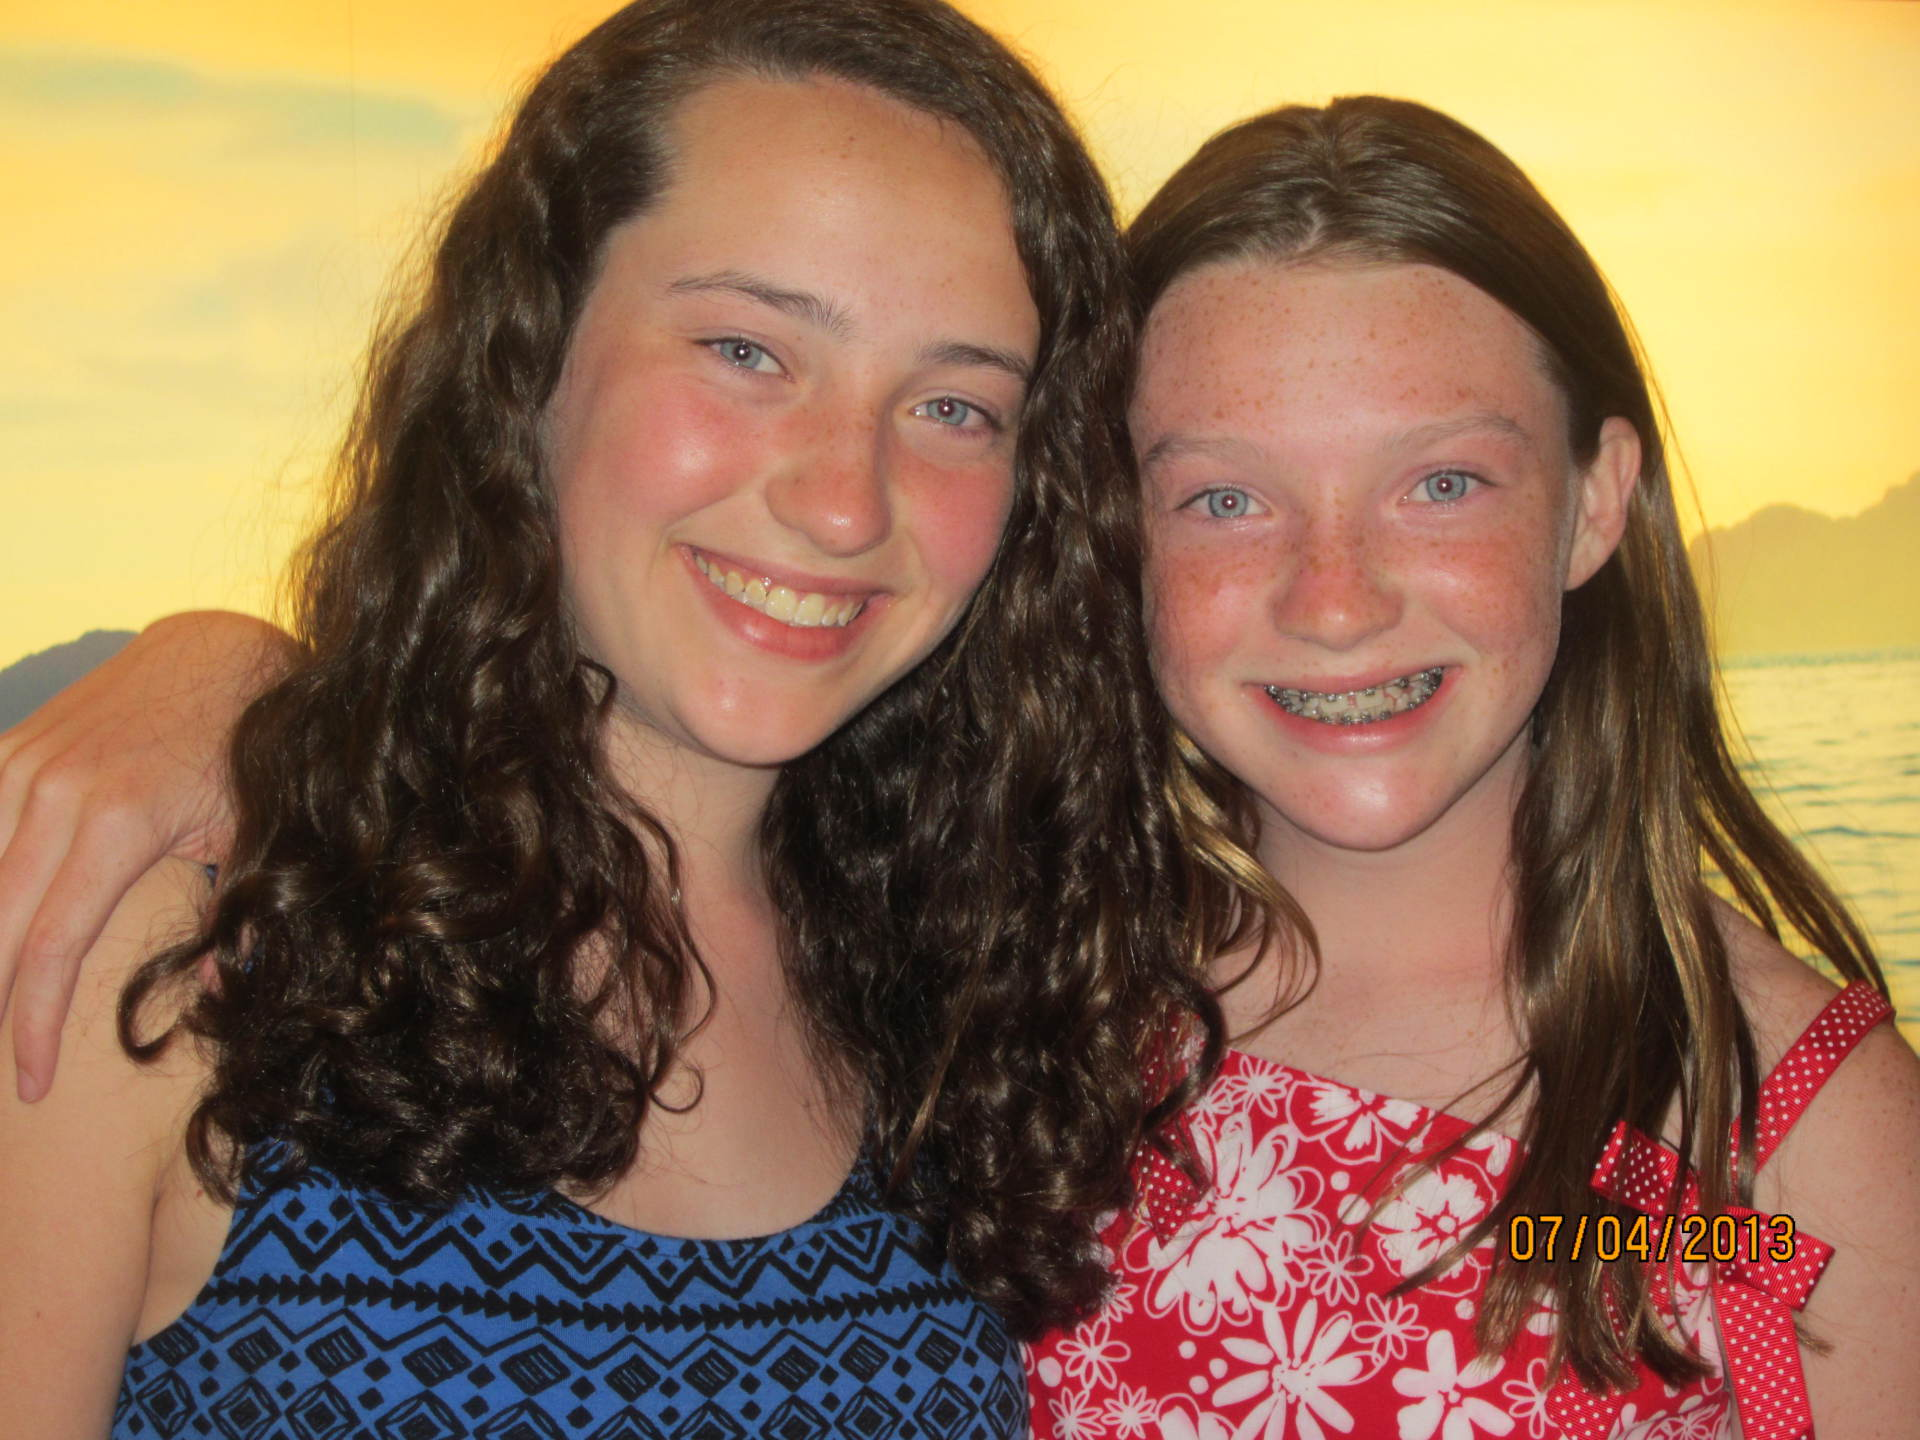 Anna with her sister Emily a week prior to being diagnosed